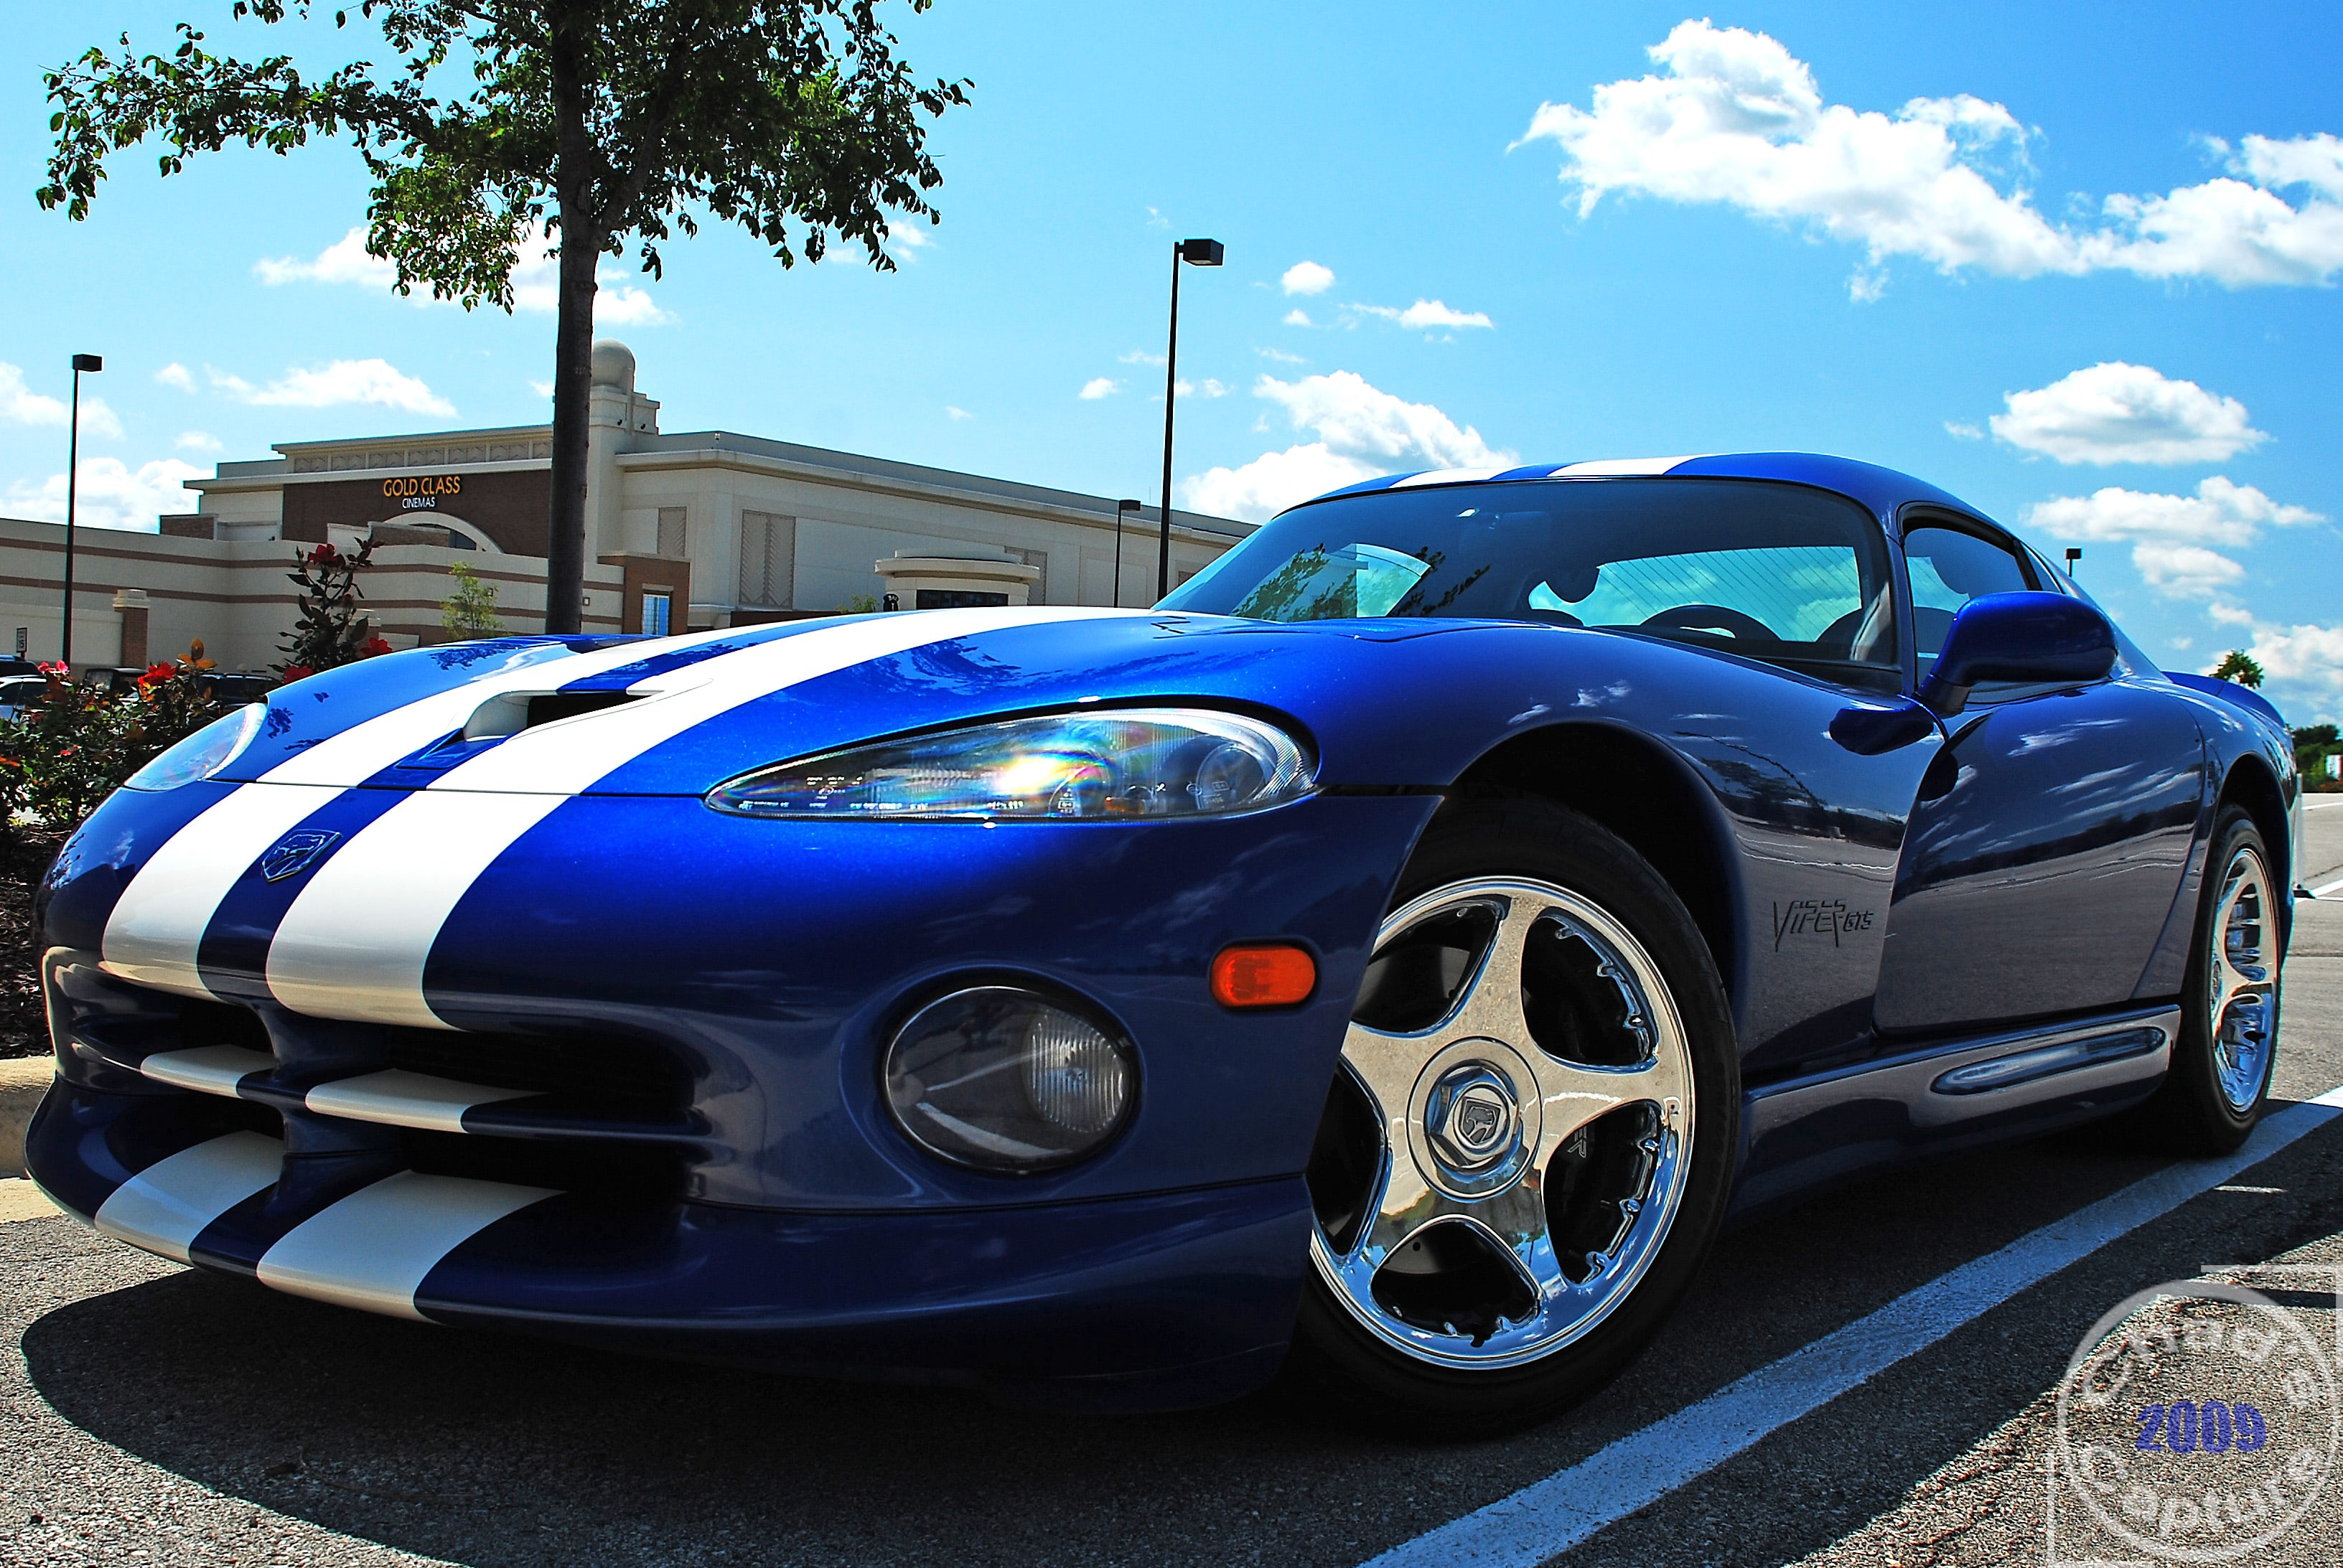 1996 Dodge Viper GTS Widescreen